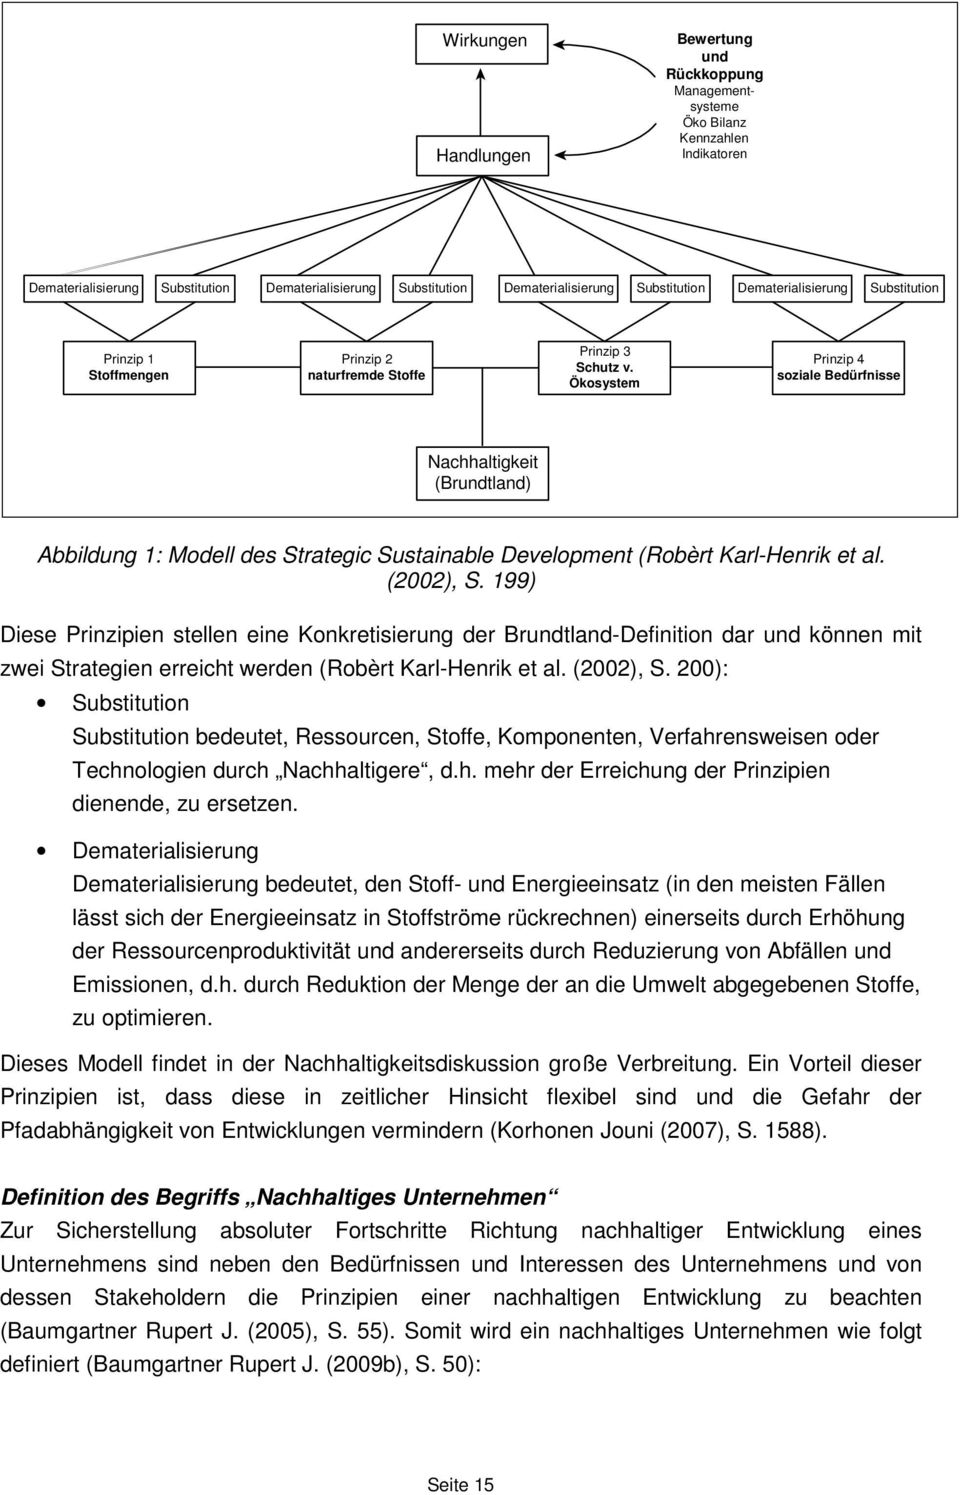 Ökosystem Prinzip 4 soziale Bedürfnisse Nachhaltigkeit (Brundtland) Abbildung 1: Modell des Strategic Sustainable Development (Robèrt Karl-Henrik et al. (2002), S.